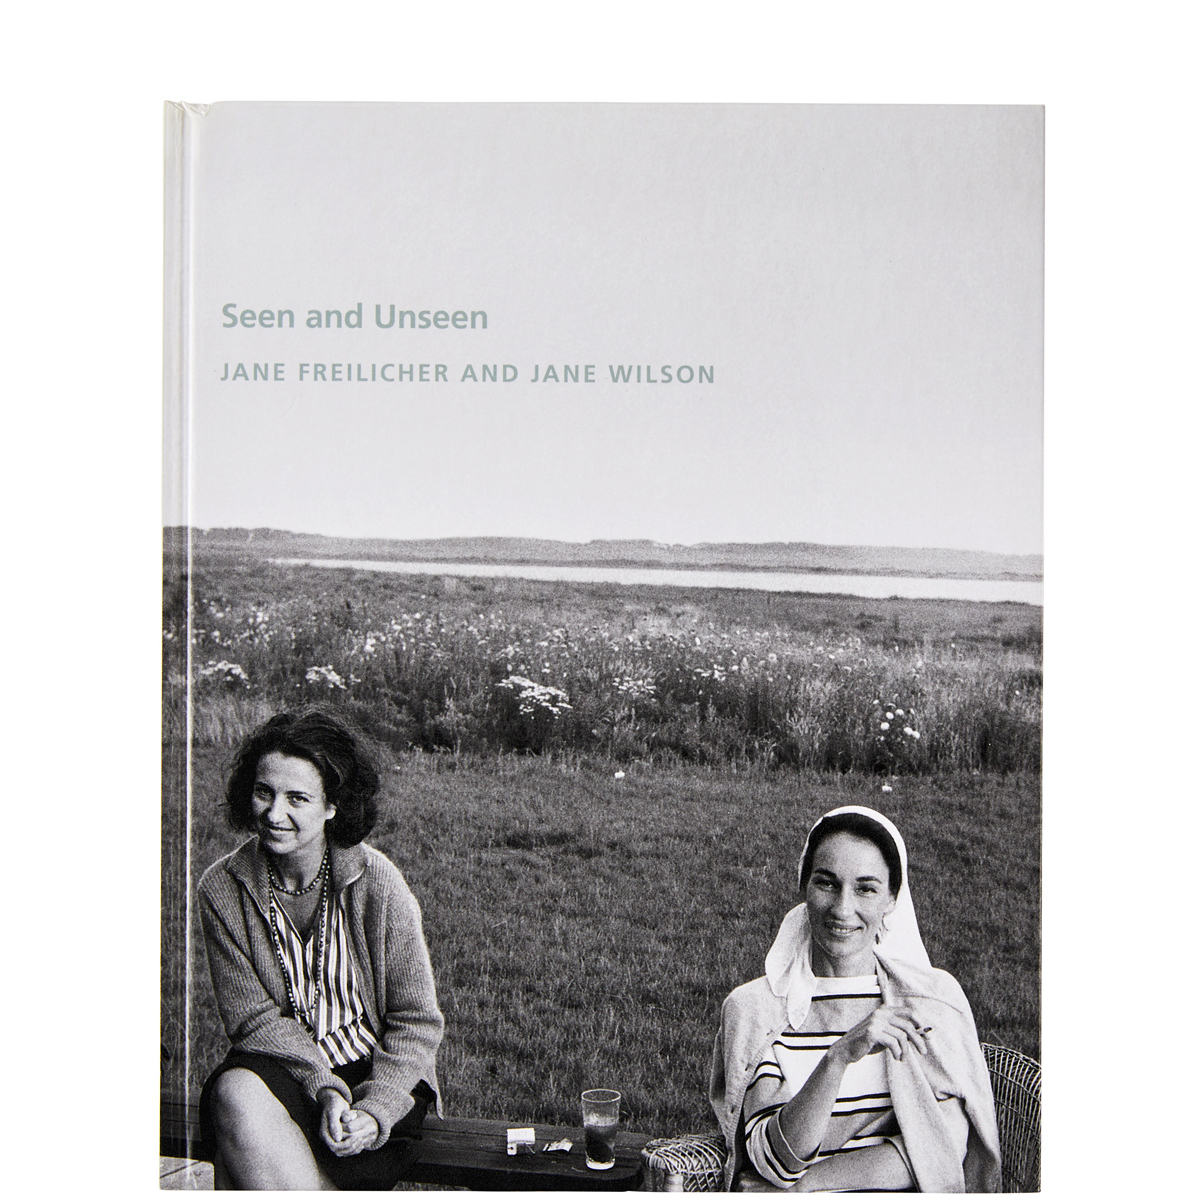 Jane Freilicher and Jane Wilson: Seen and Unseen